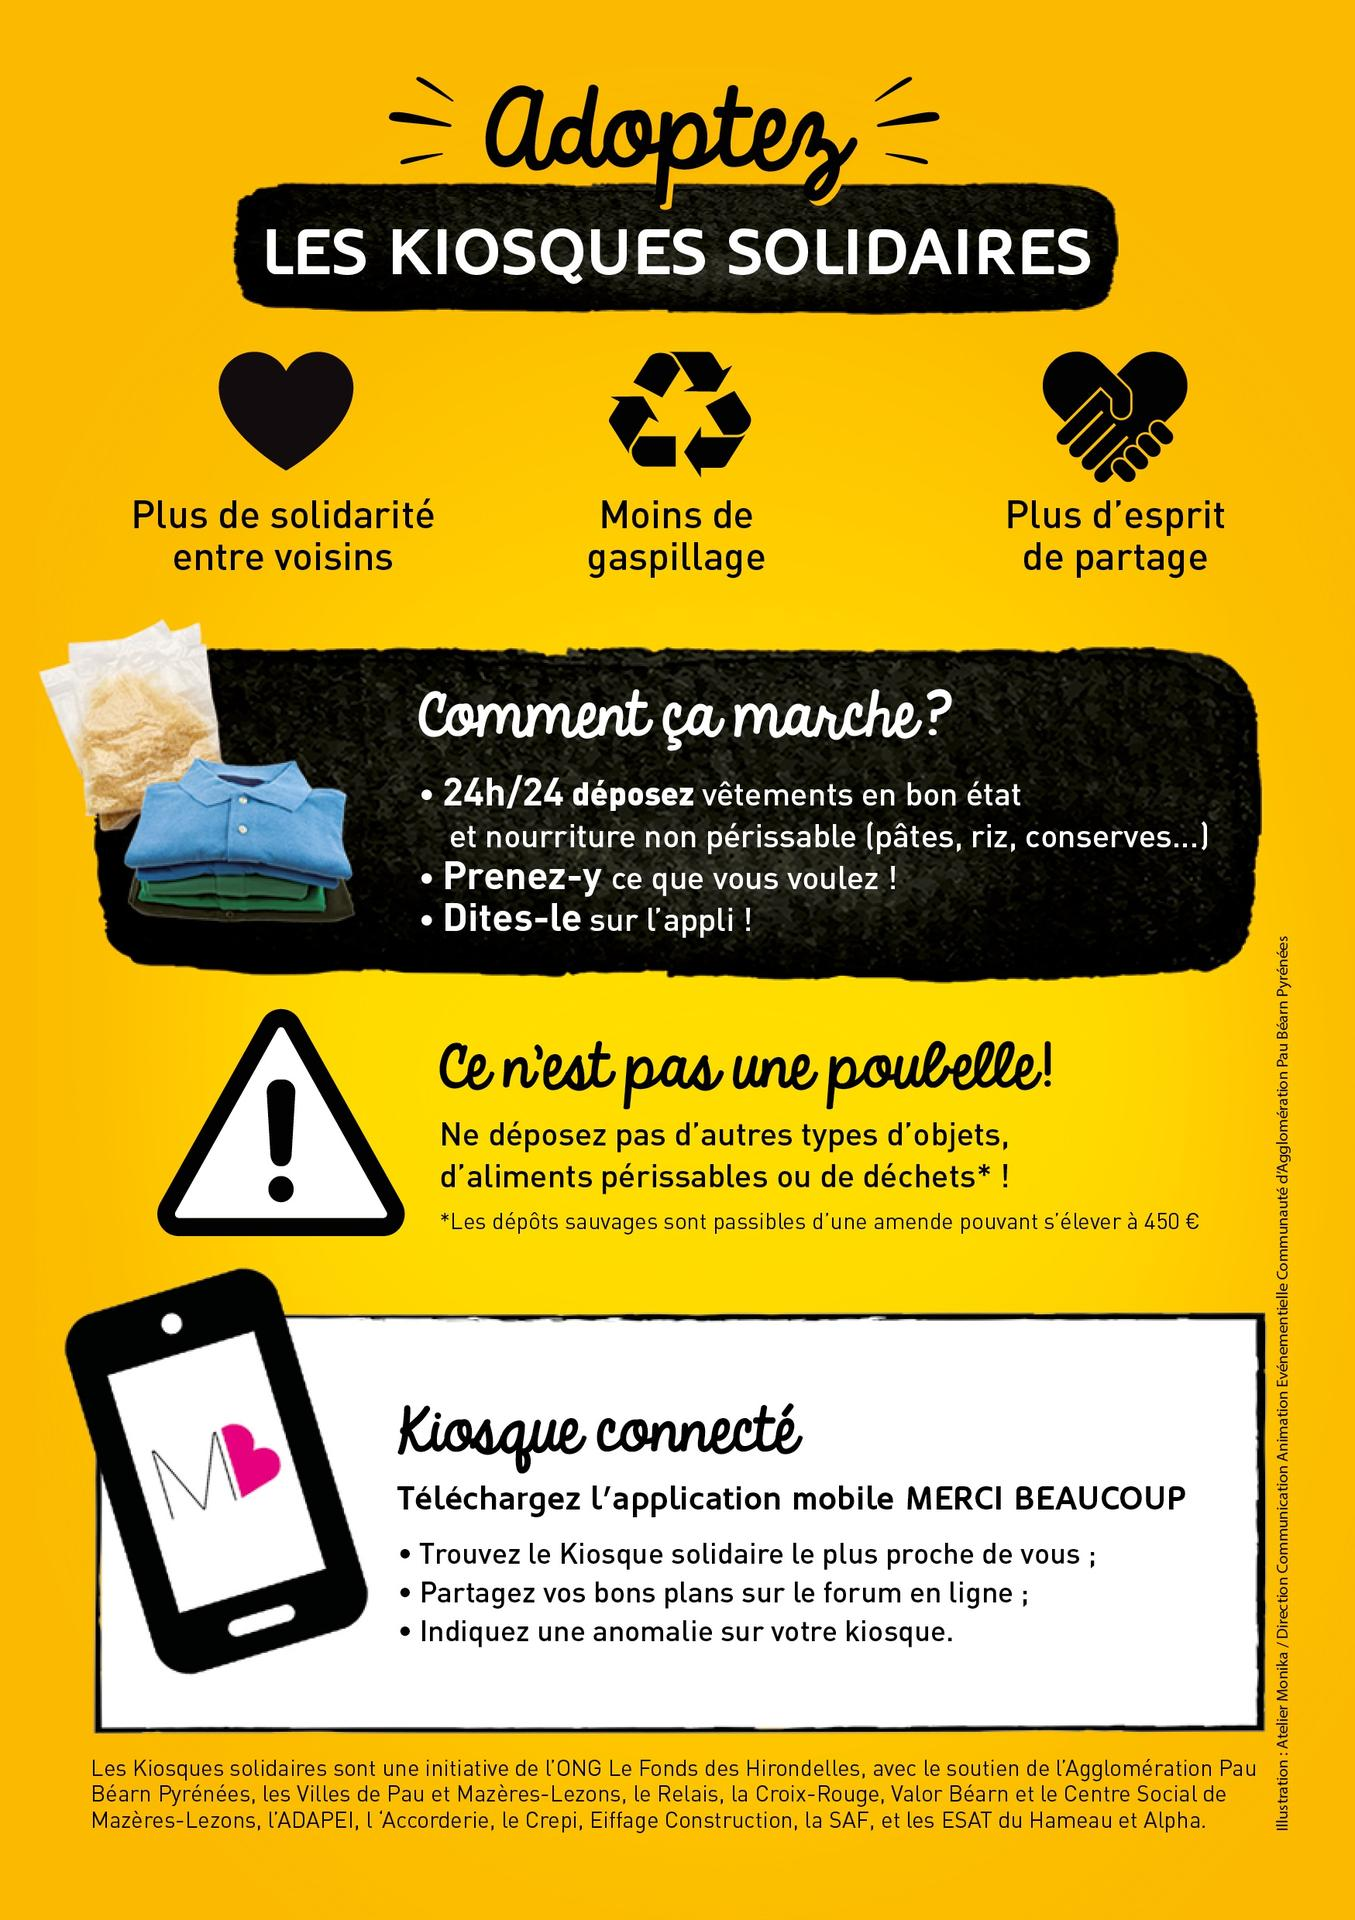 21956-152-kiosque-solidaire-explications-web